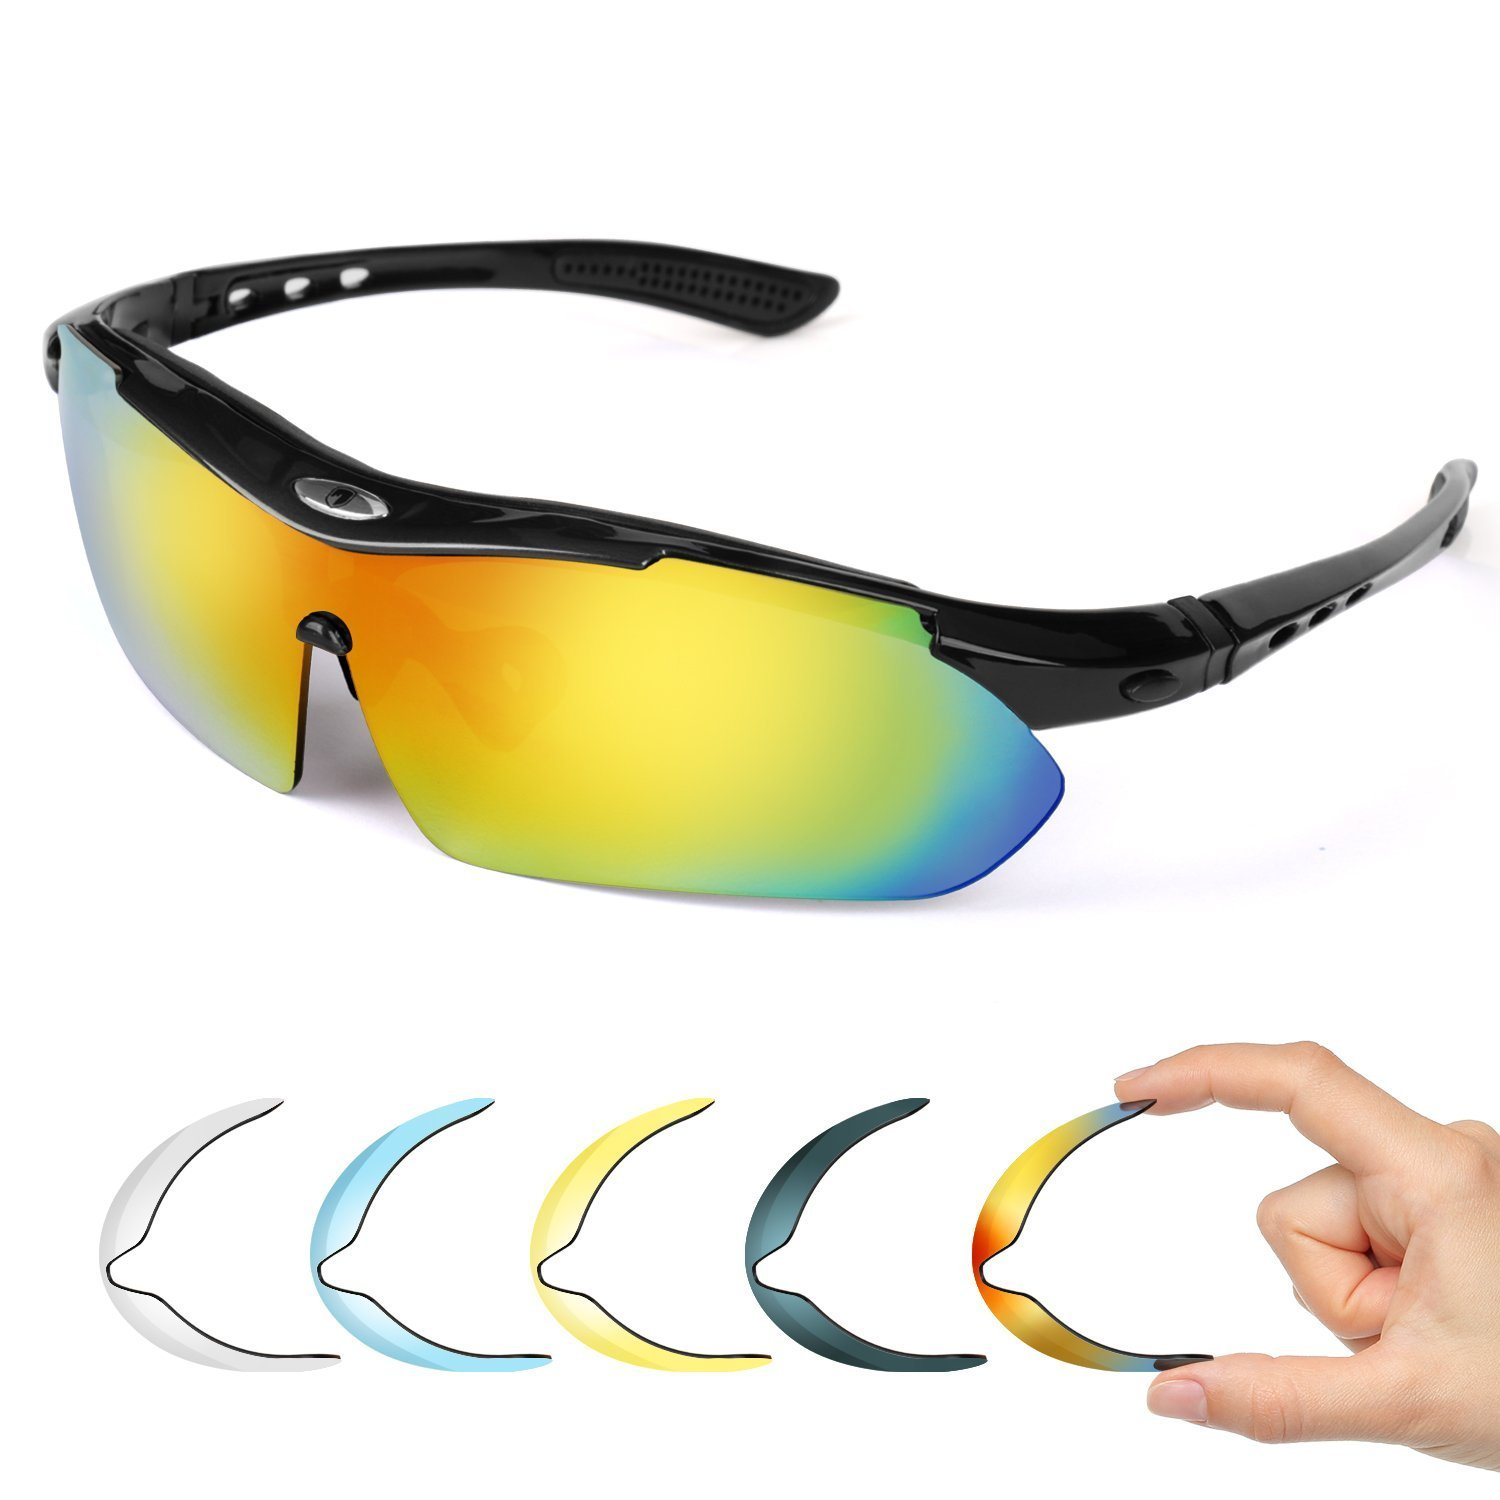 757896ebc4 Polarized Sport Sunglasses with 5 Fashion Lenses - FITFORT UV400 Protection  Tr 90 Adjustable Nose Pad Glasses for Men Women Cycling Beach Baseball  Fishing ...